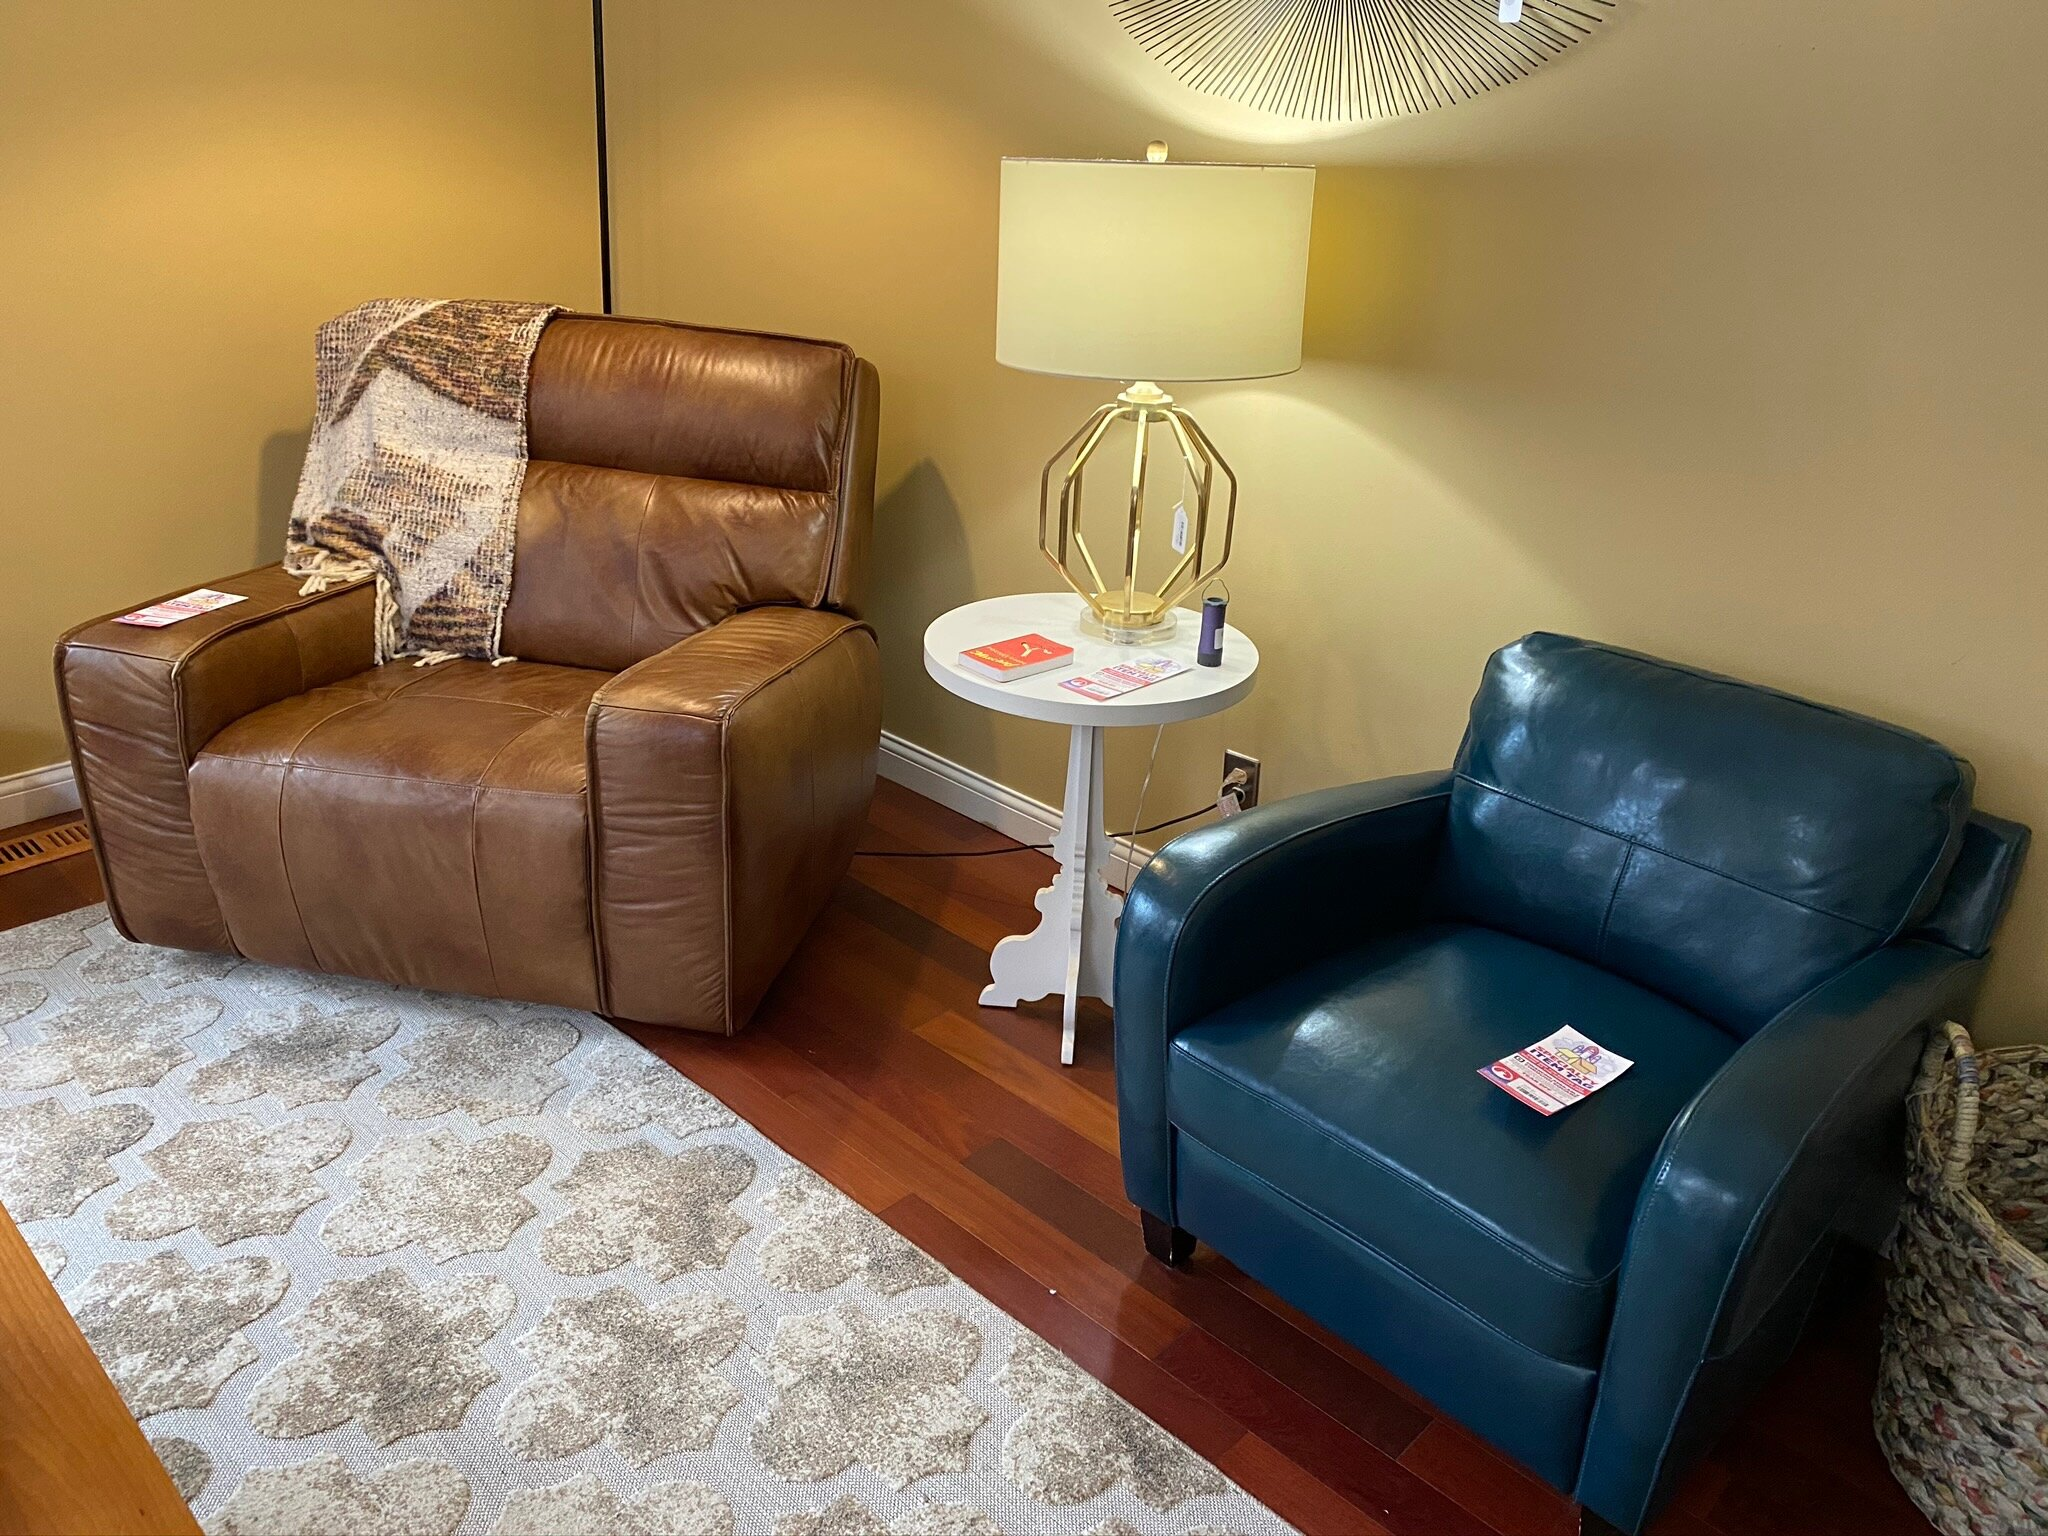 Furniture Decor Ready For Your Home In Indy Estate